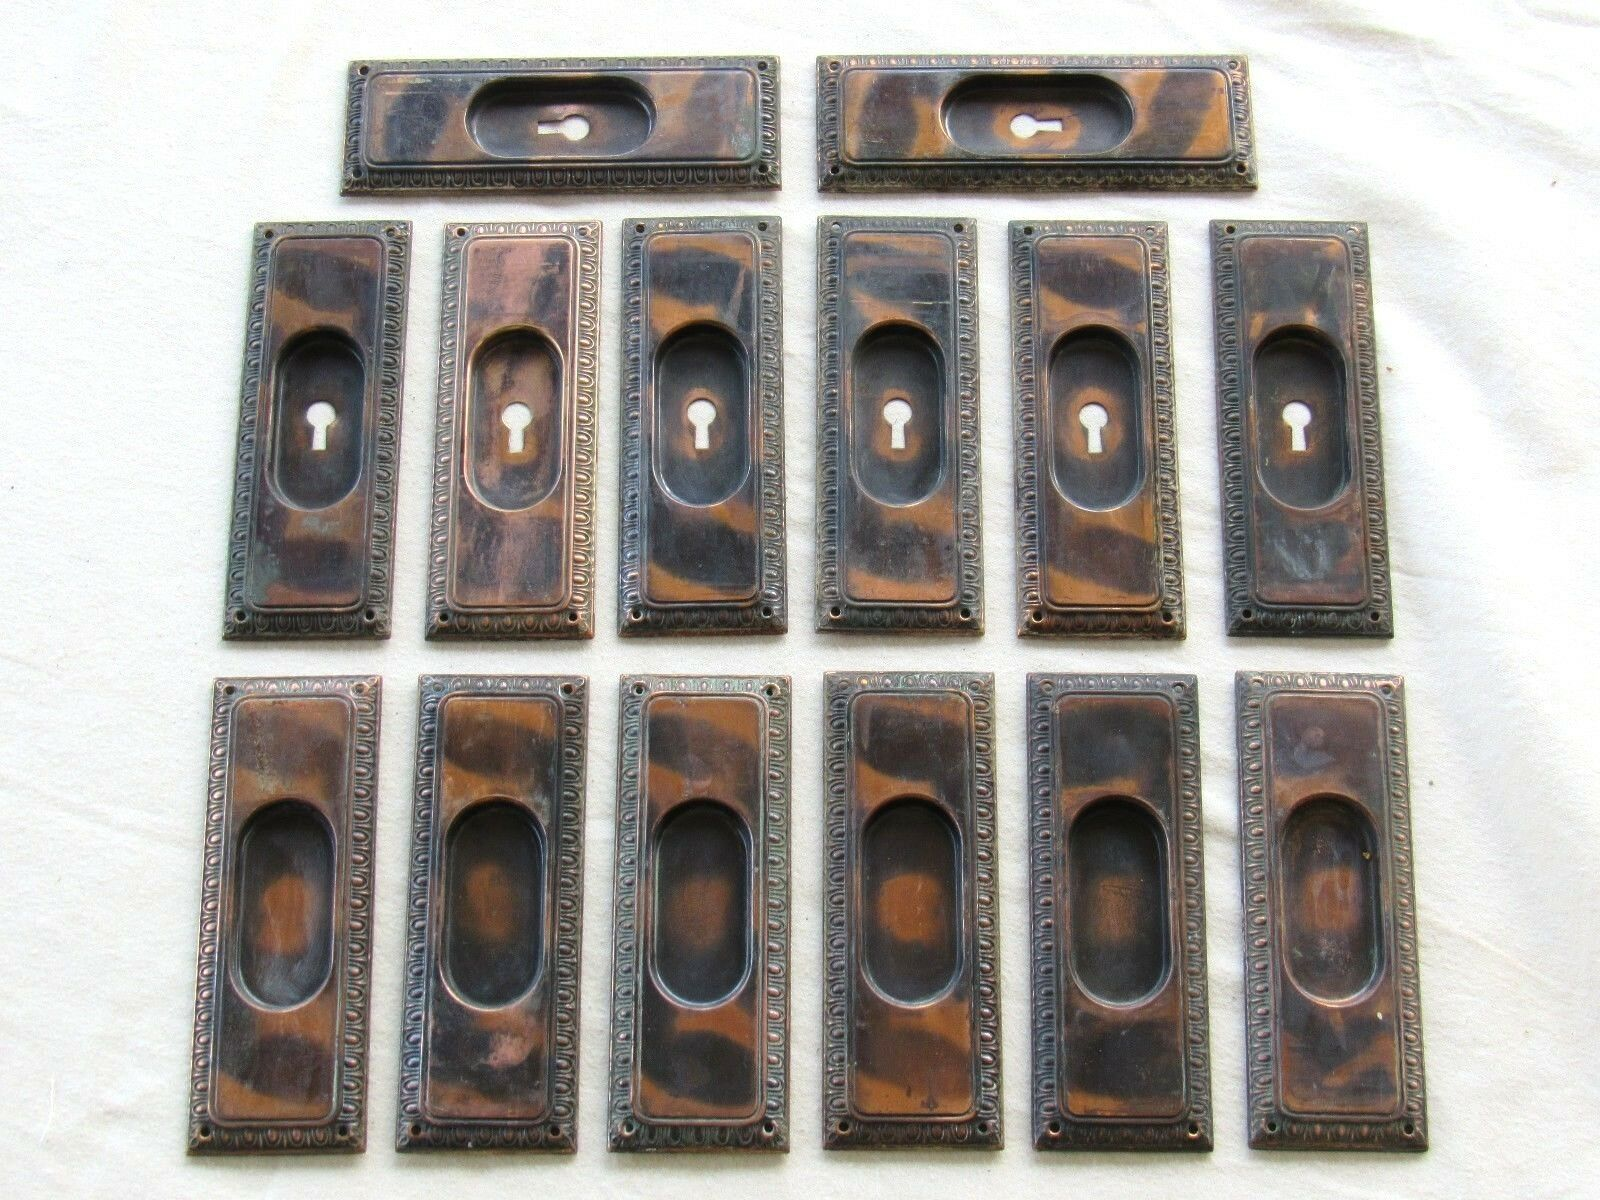 1 Pair of Antique Japanned Egg and Dart Pocket Door Pulls Handles (7 Available)